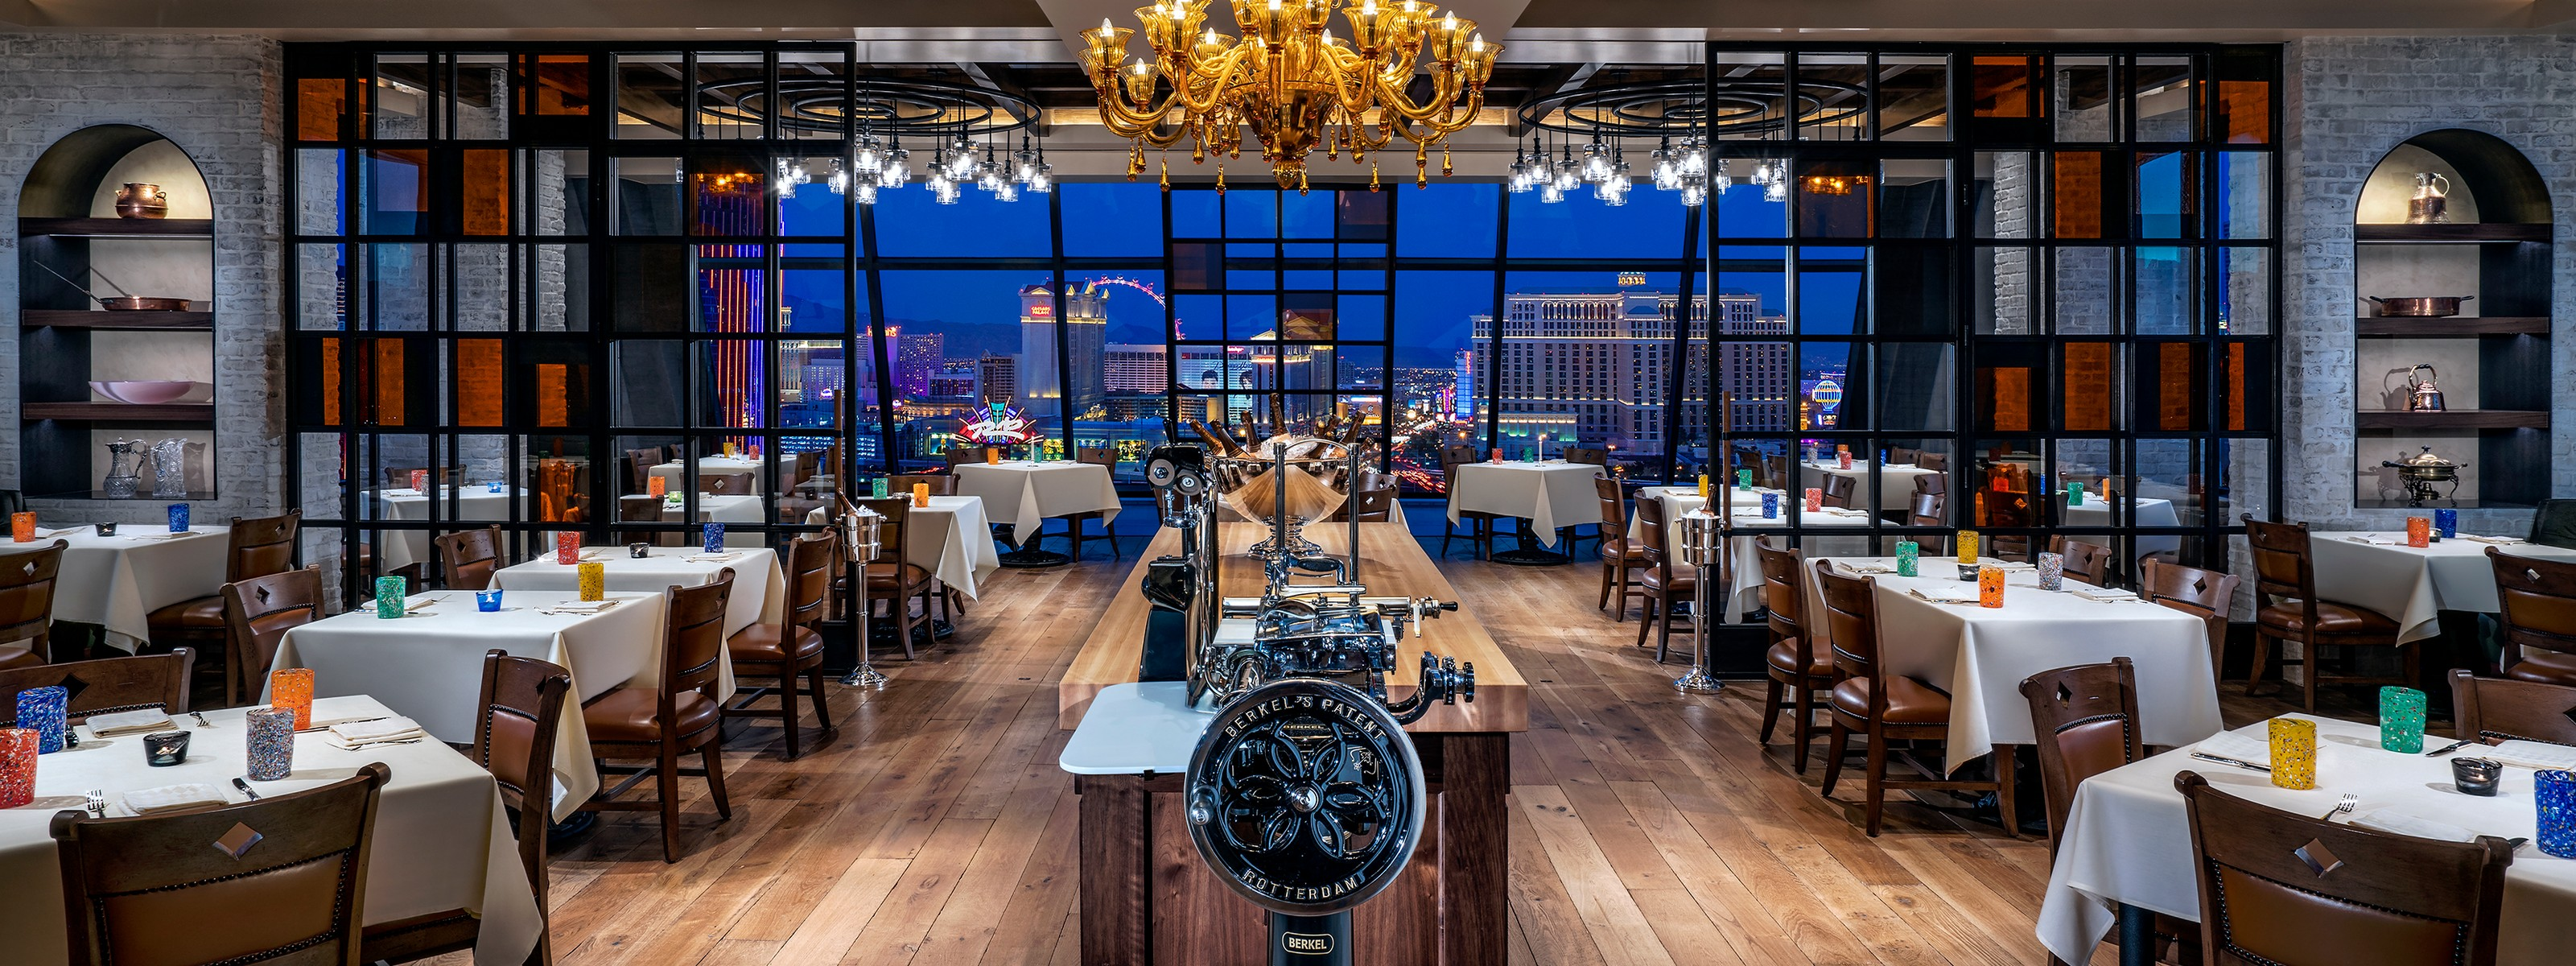 Cucina Las Vegas Aria Where To Eat And Drink In Las Vegas Las Vegas The Infatuation